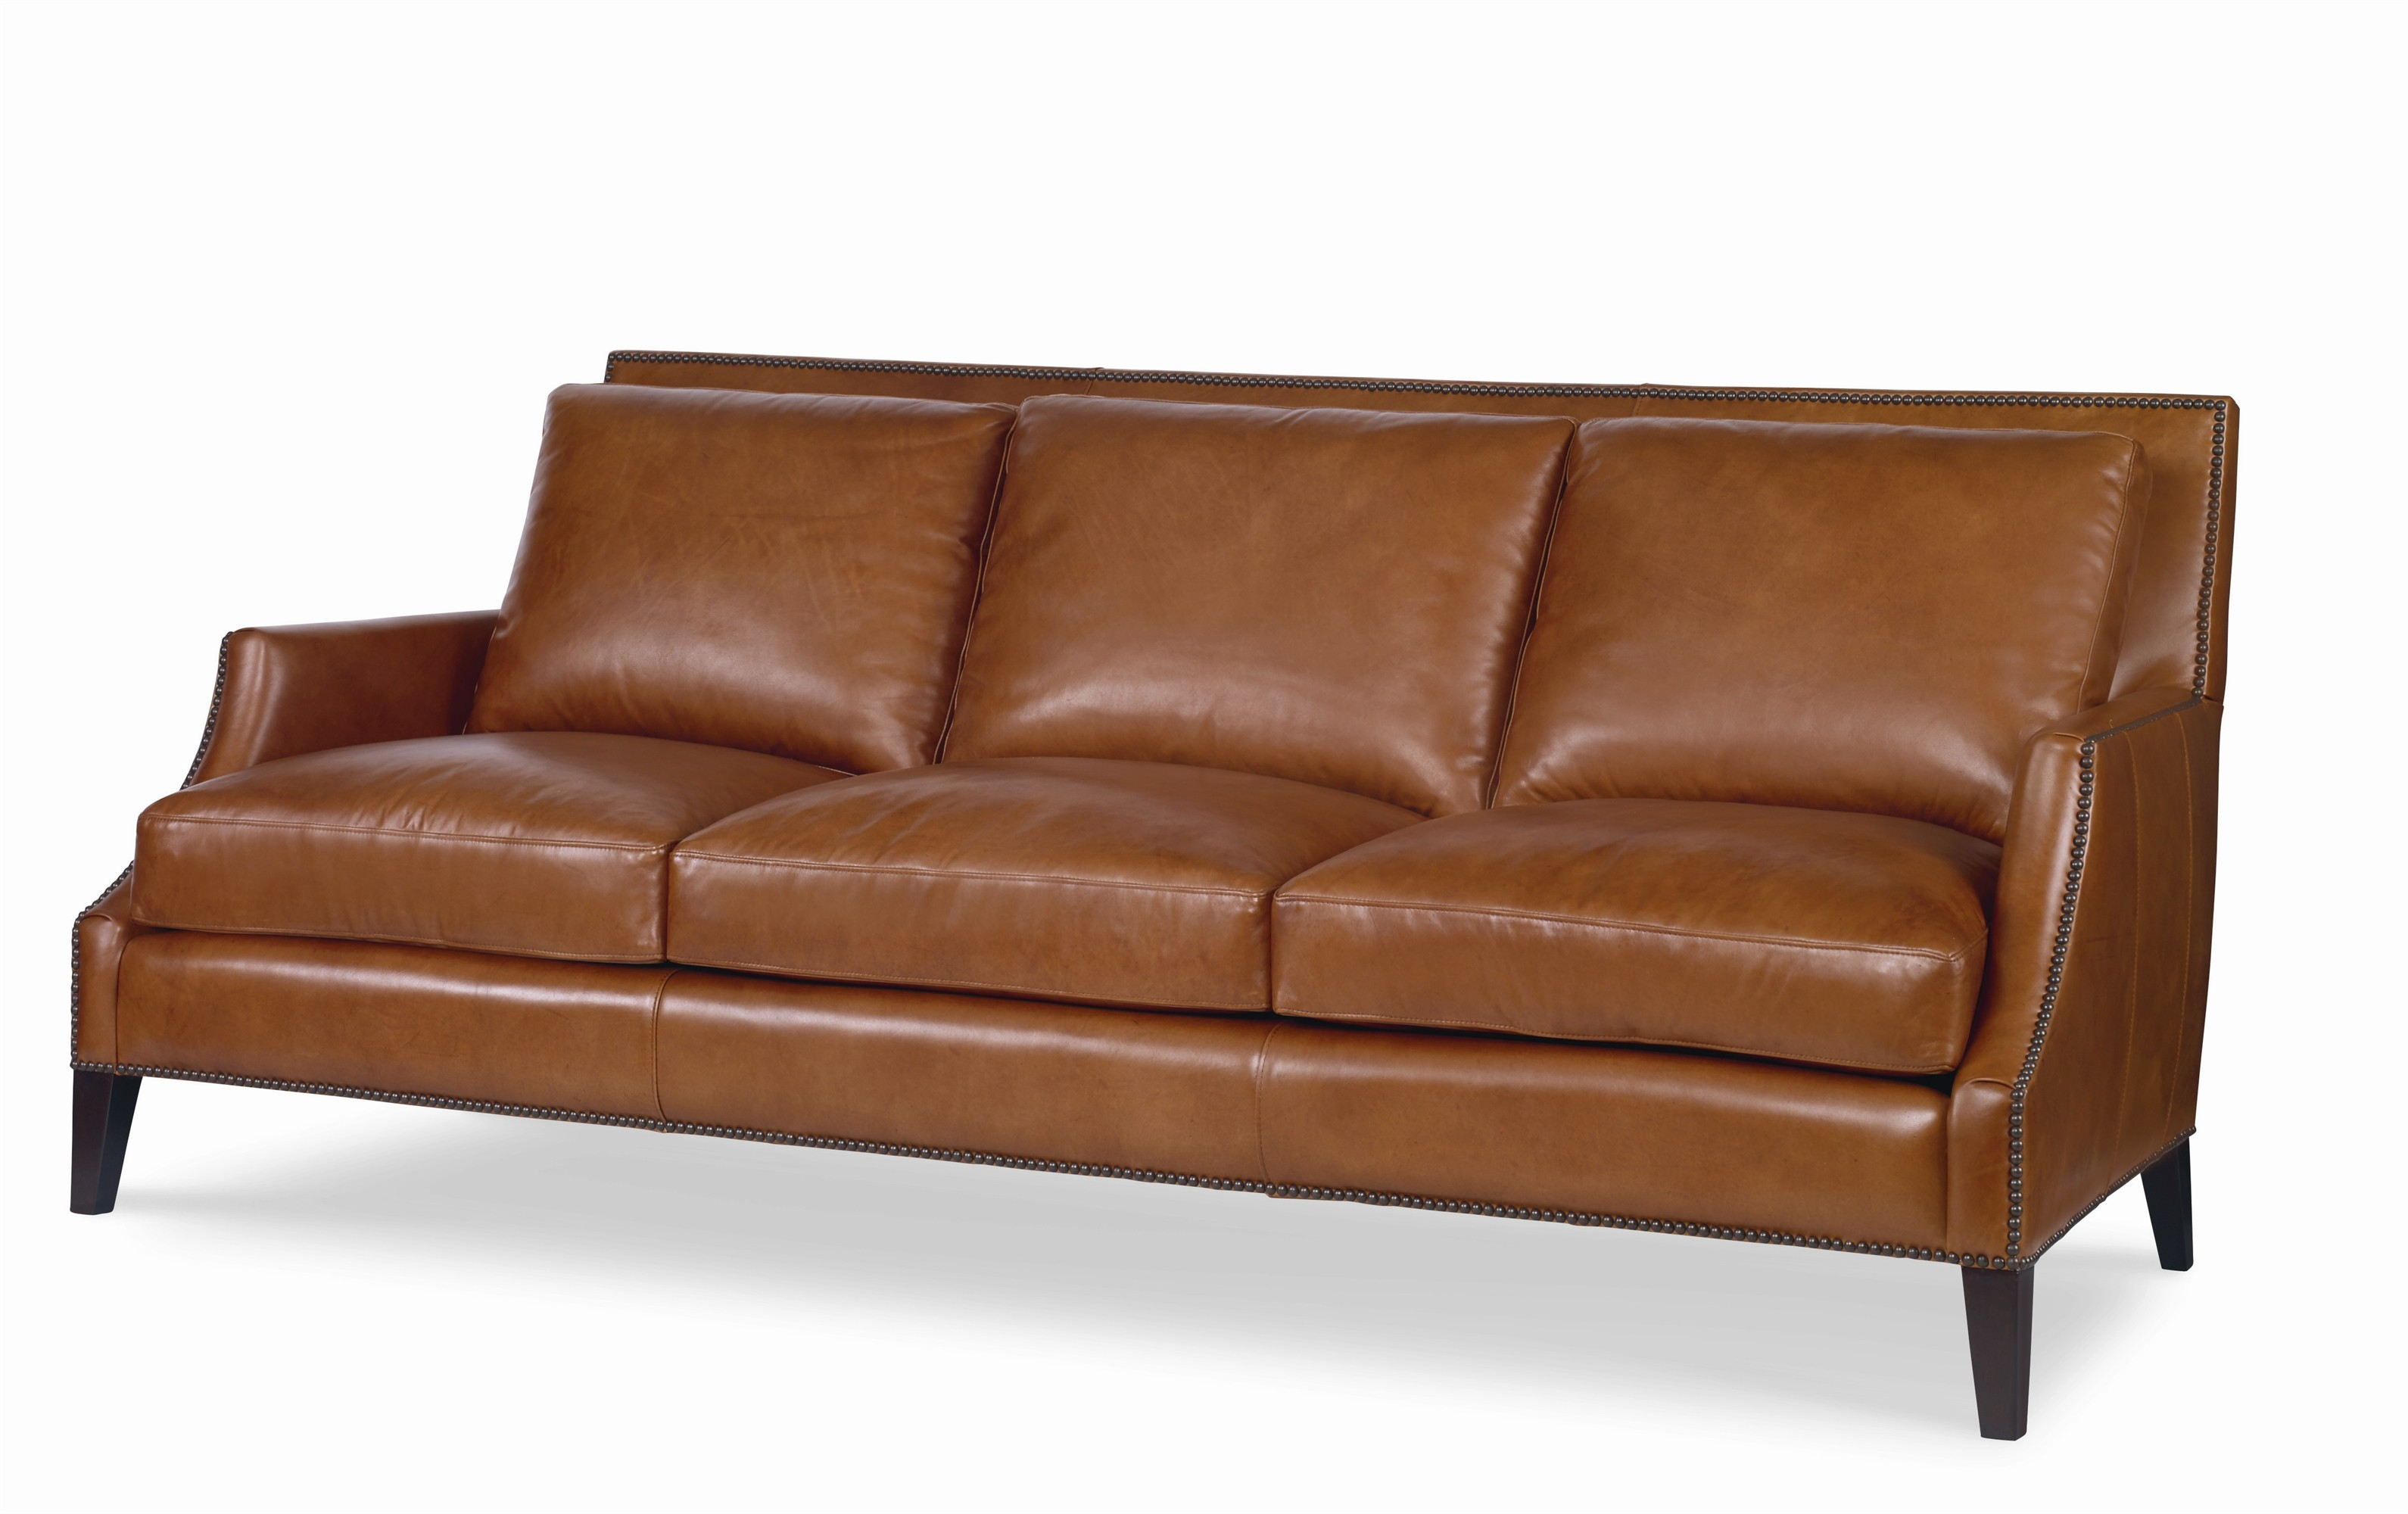 average weight of a large sofa maxwell leather restoration hardware